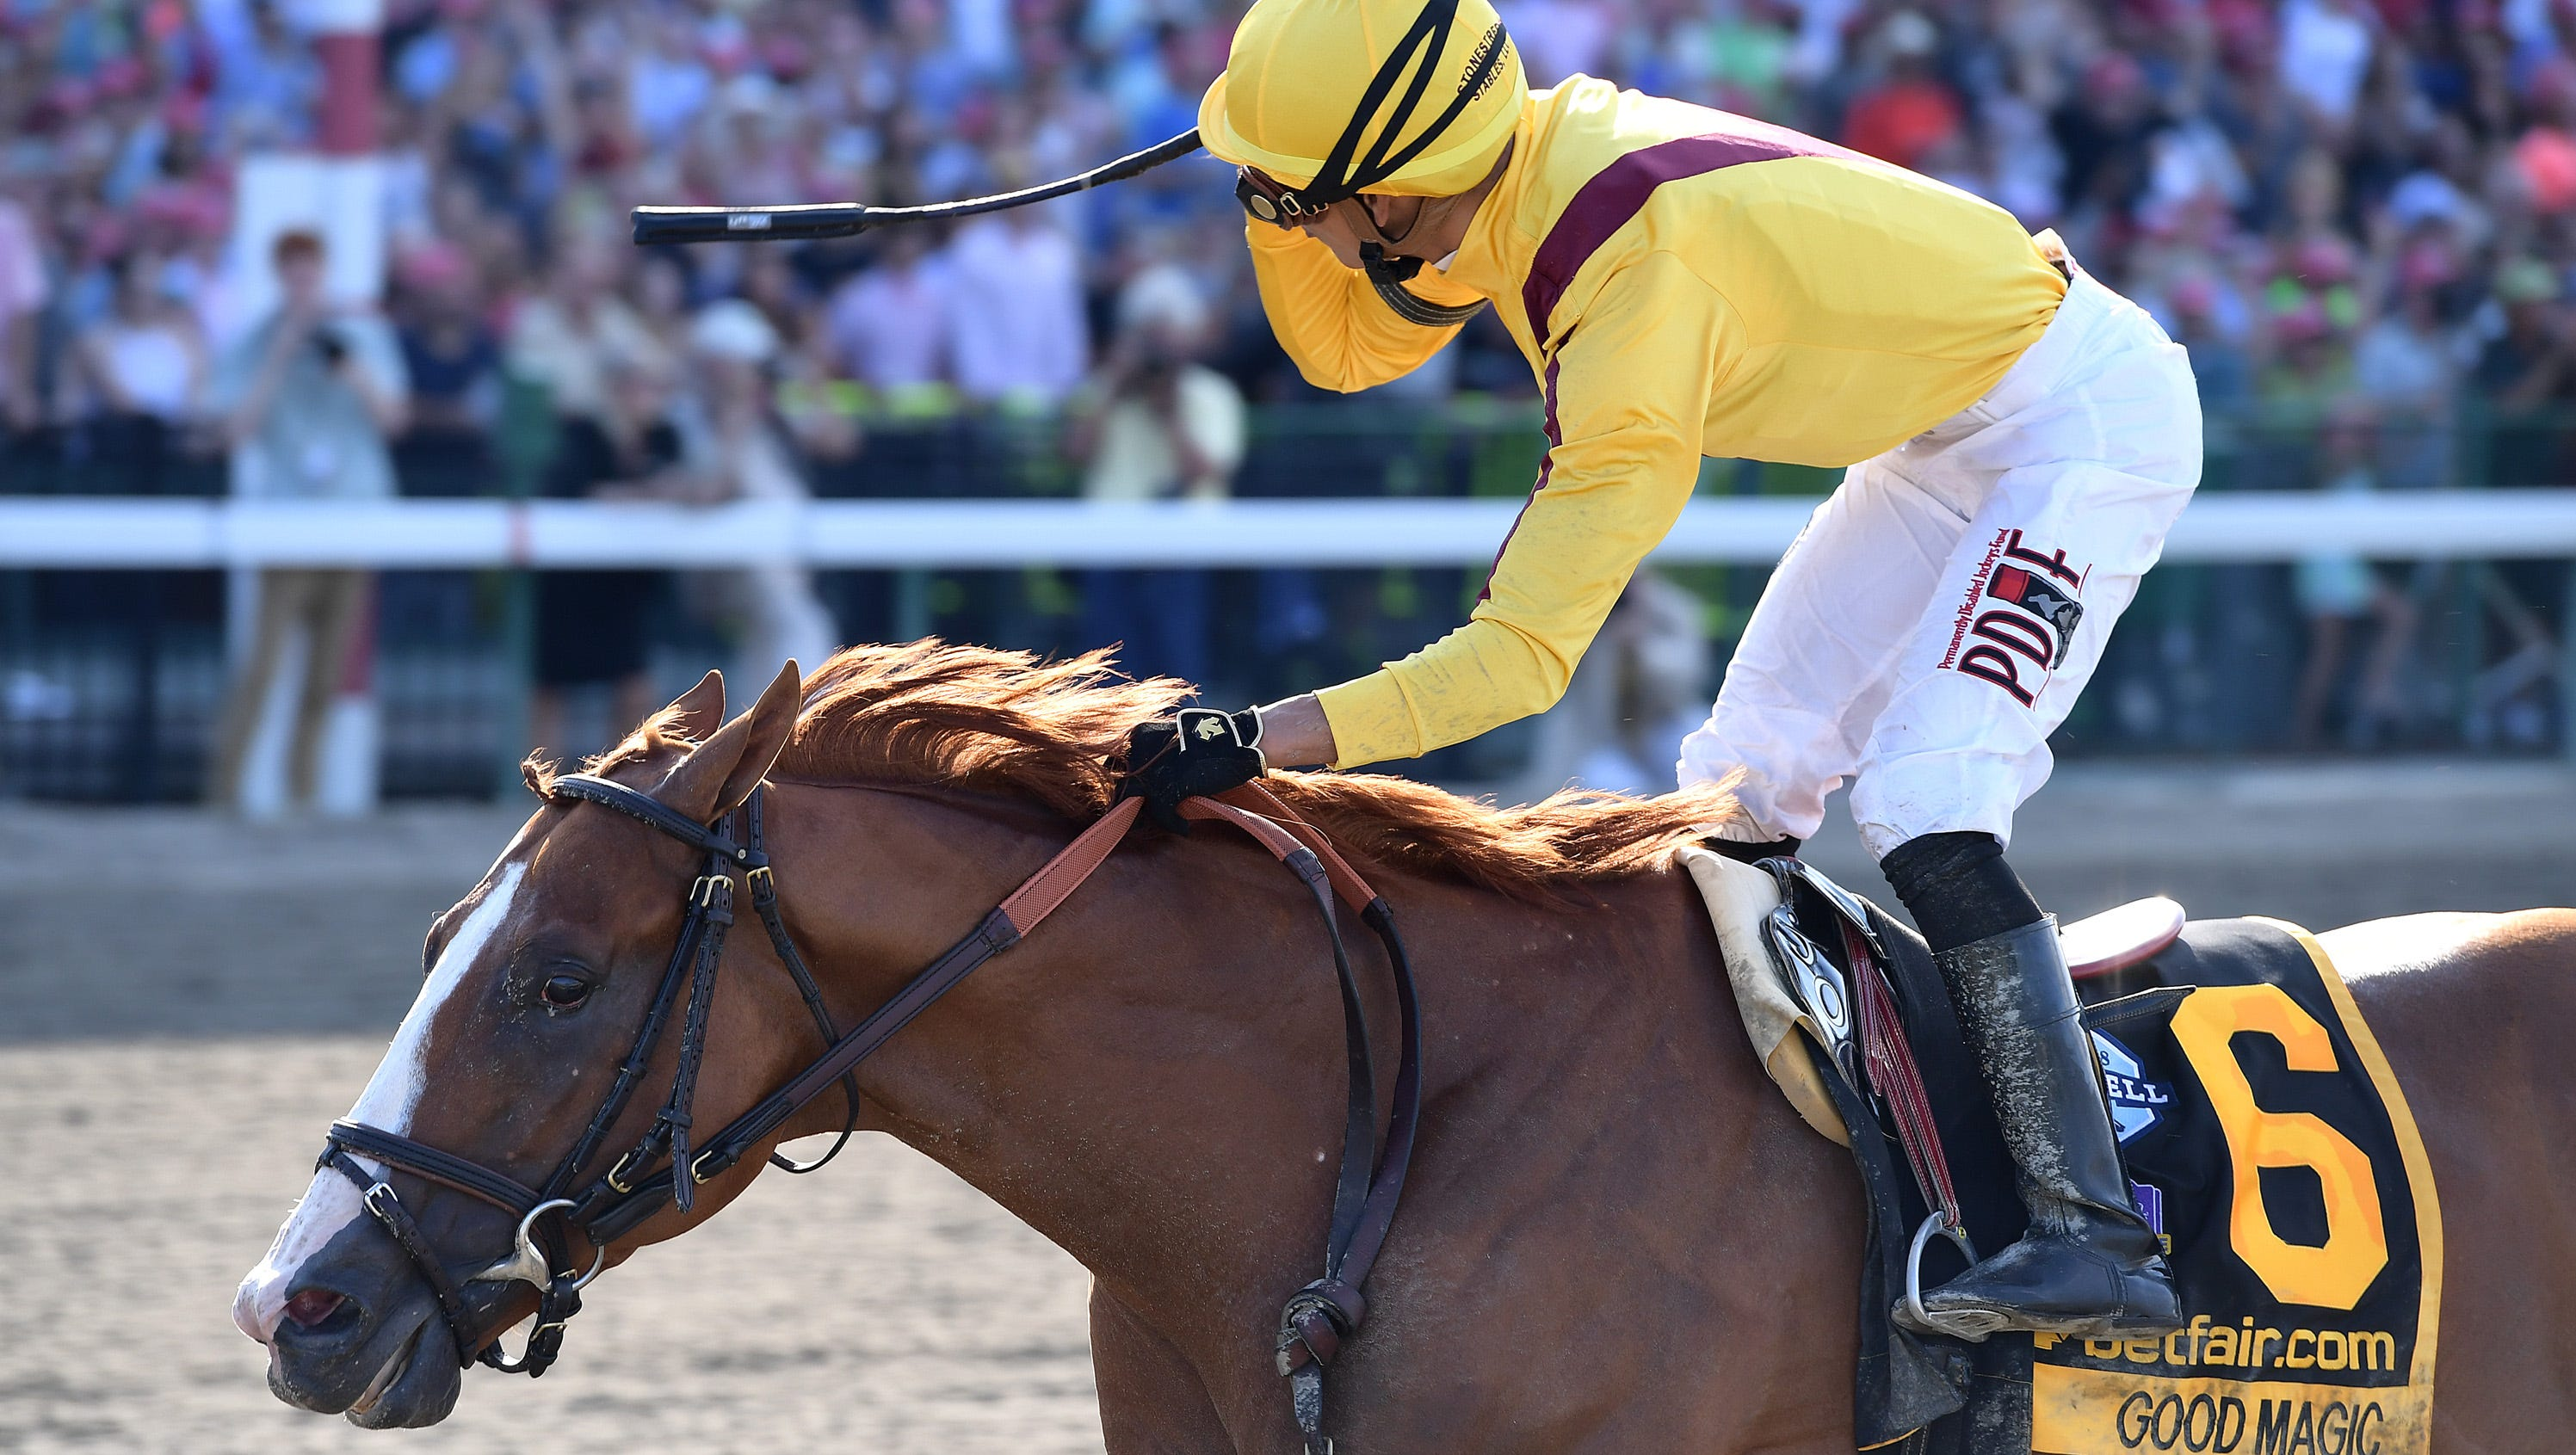 Haskell 2018 Good Magic Poised To Fill Post Justify Vacuum After Dominant Effort